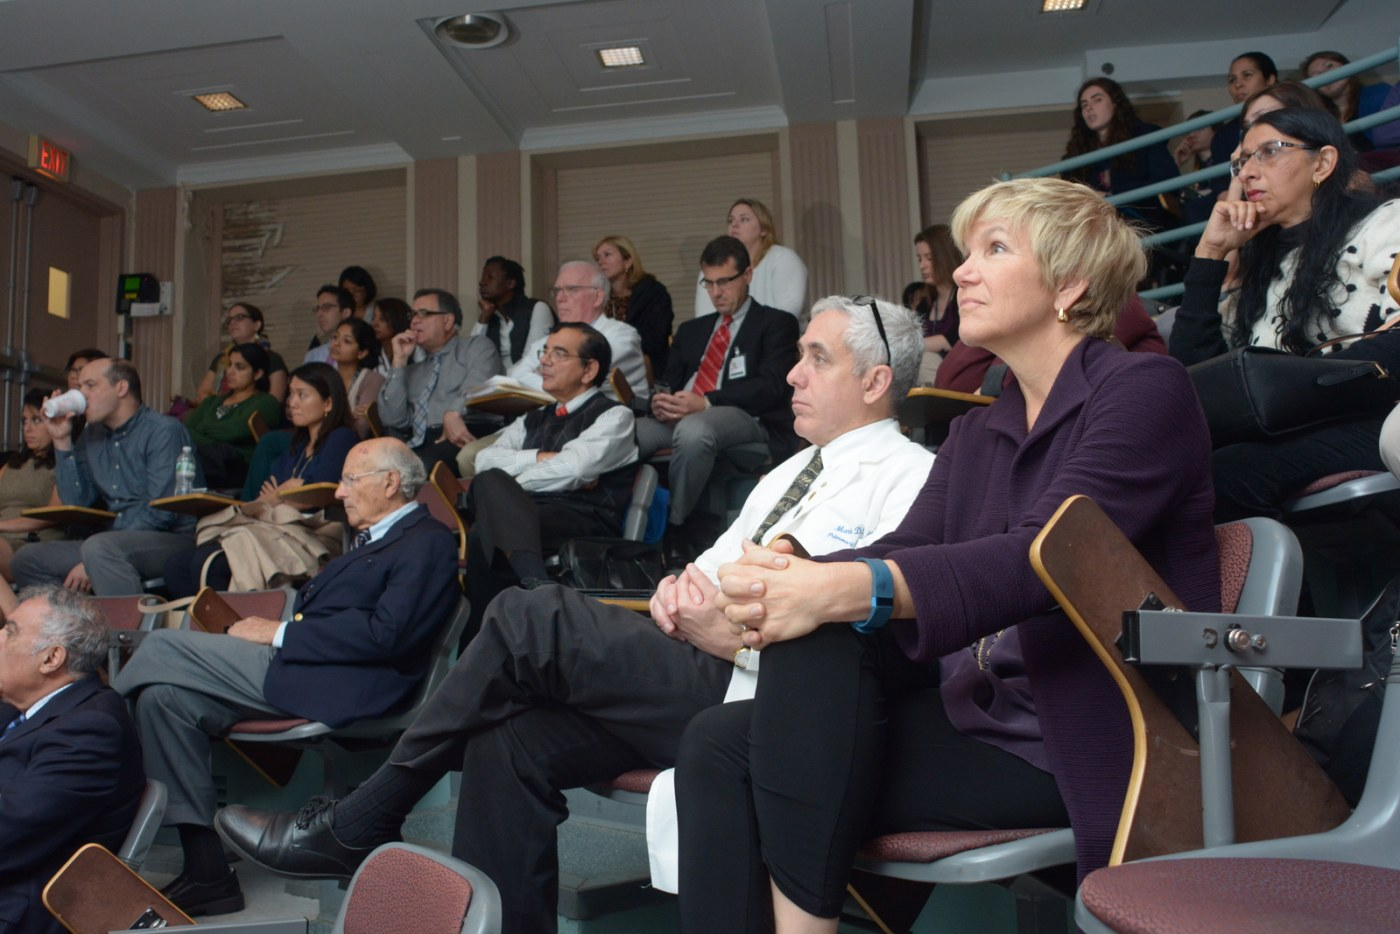 Partnership celebrated at grand rounds